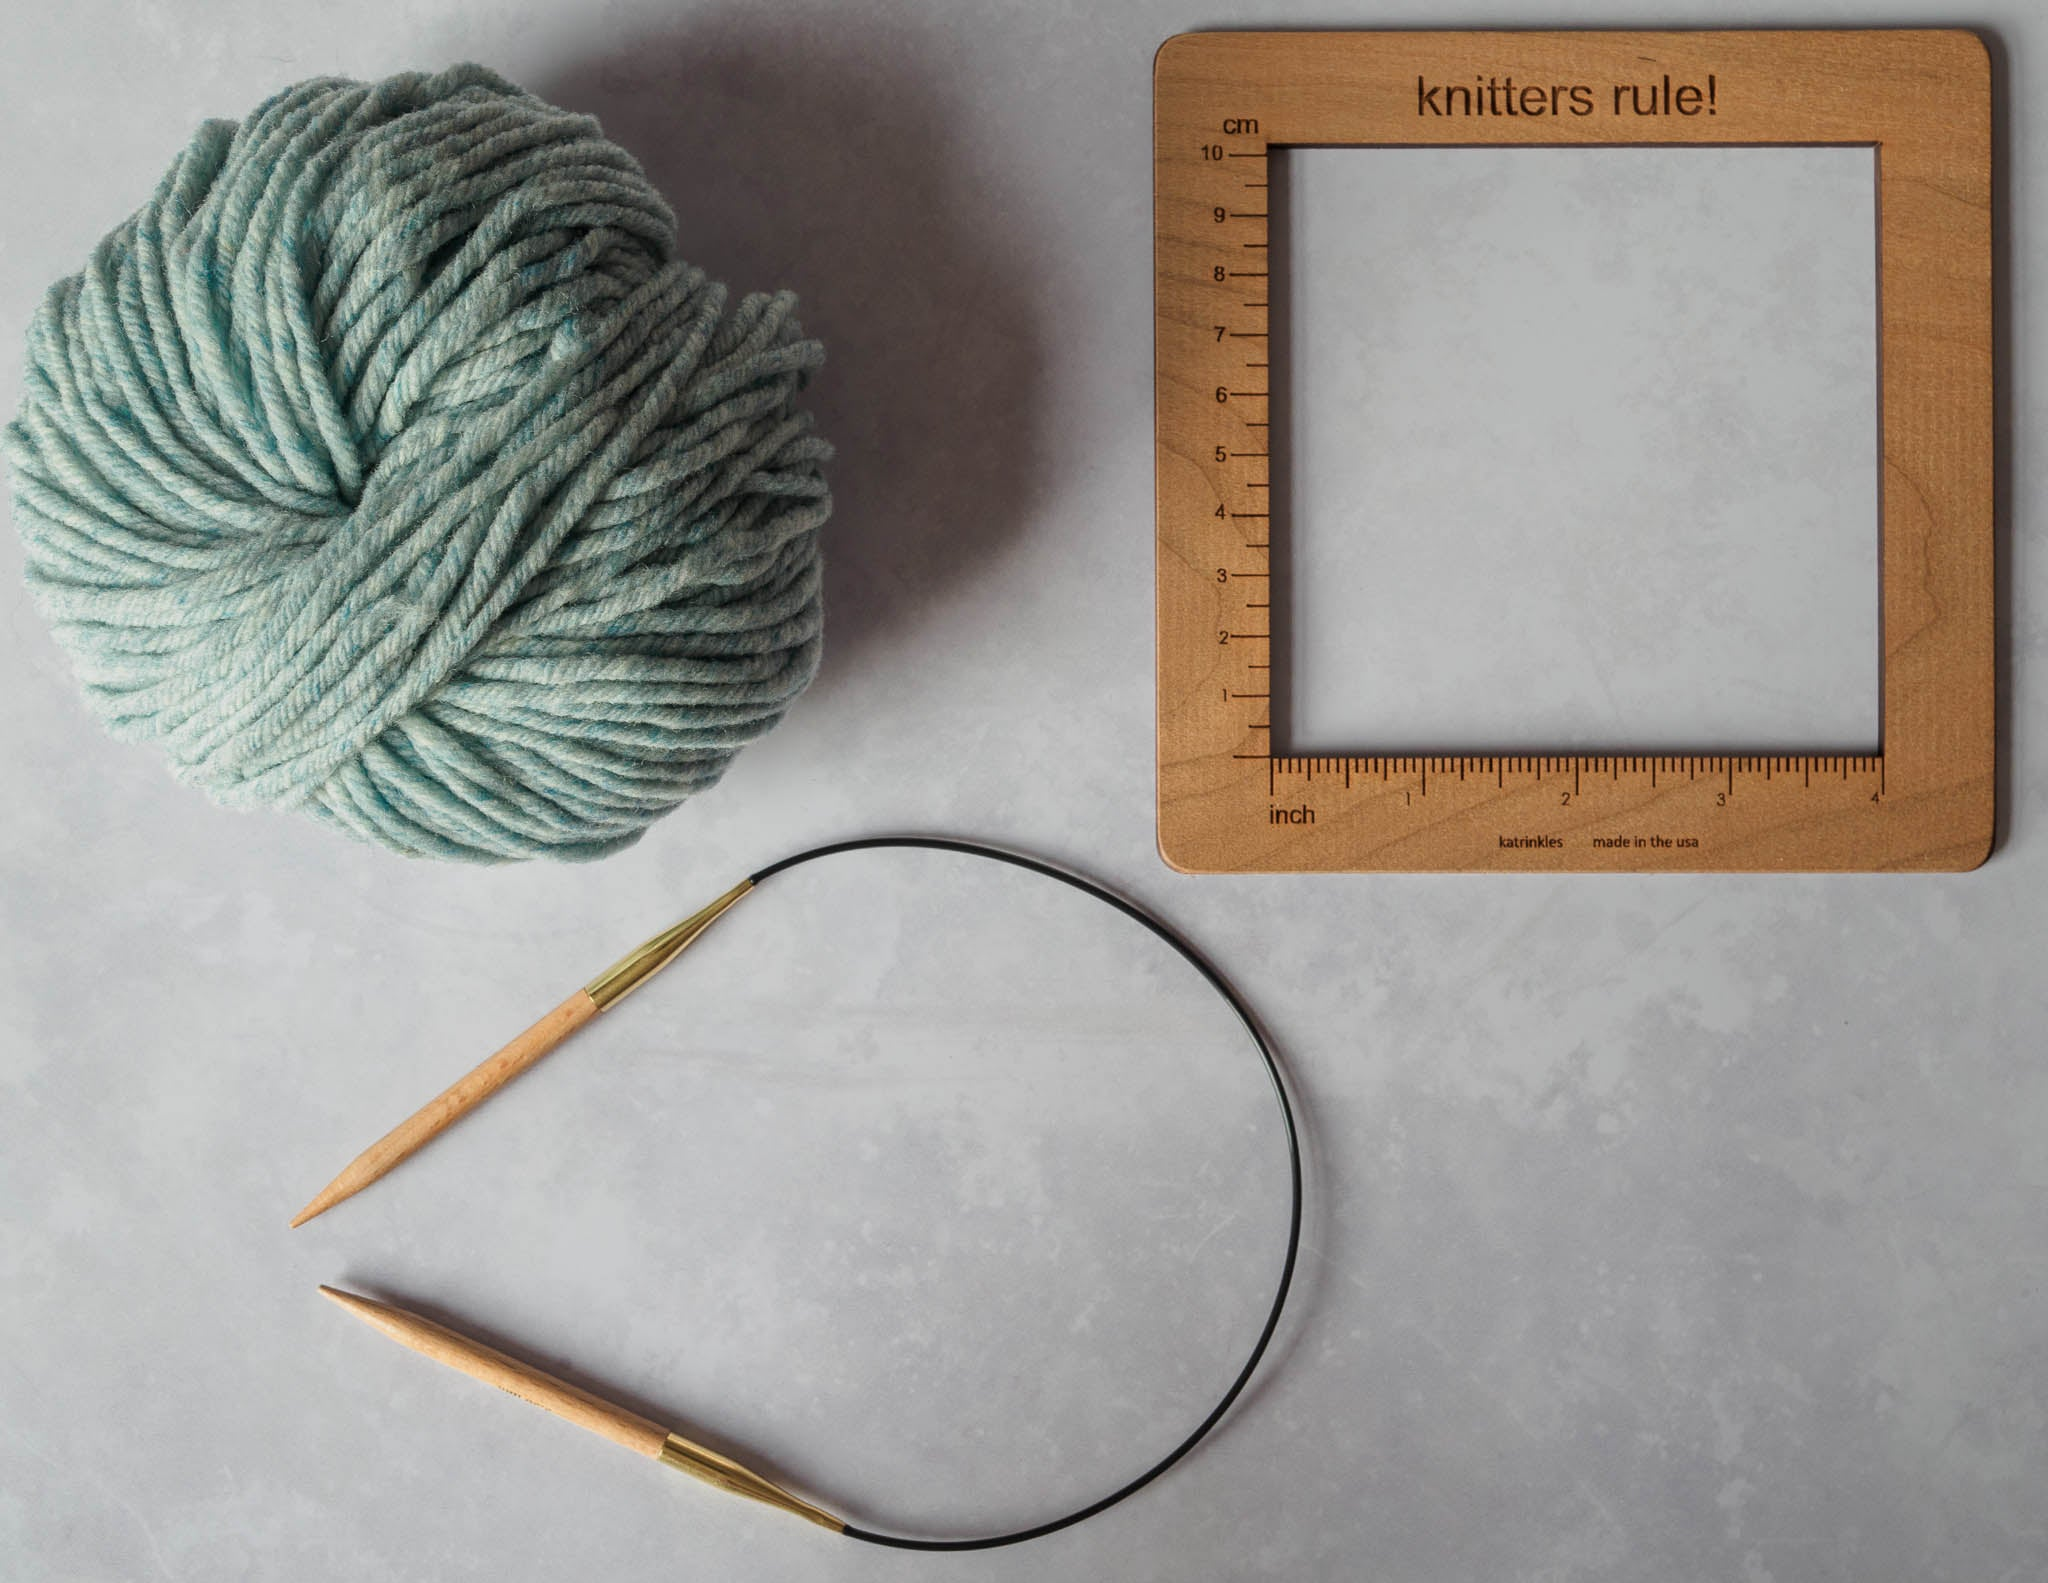 A ball of pale blue yarn, circular knitting needles and a wooden swatch measurement tool.